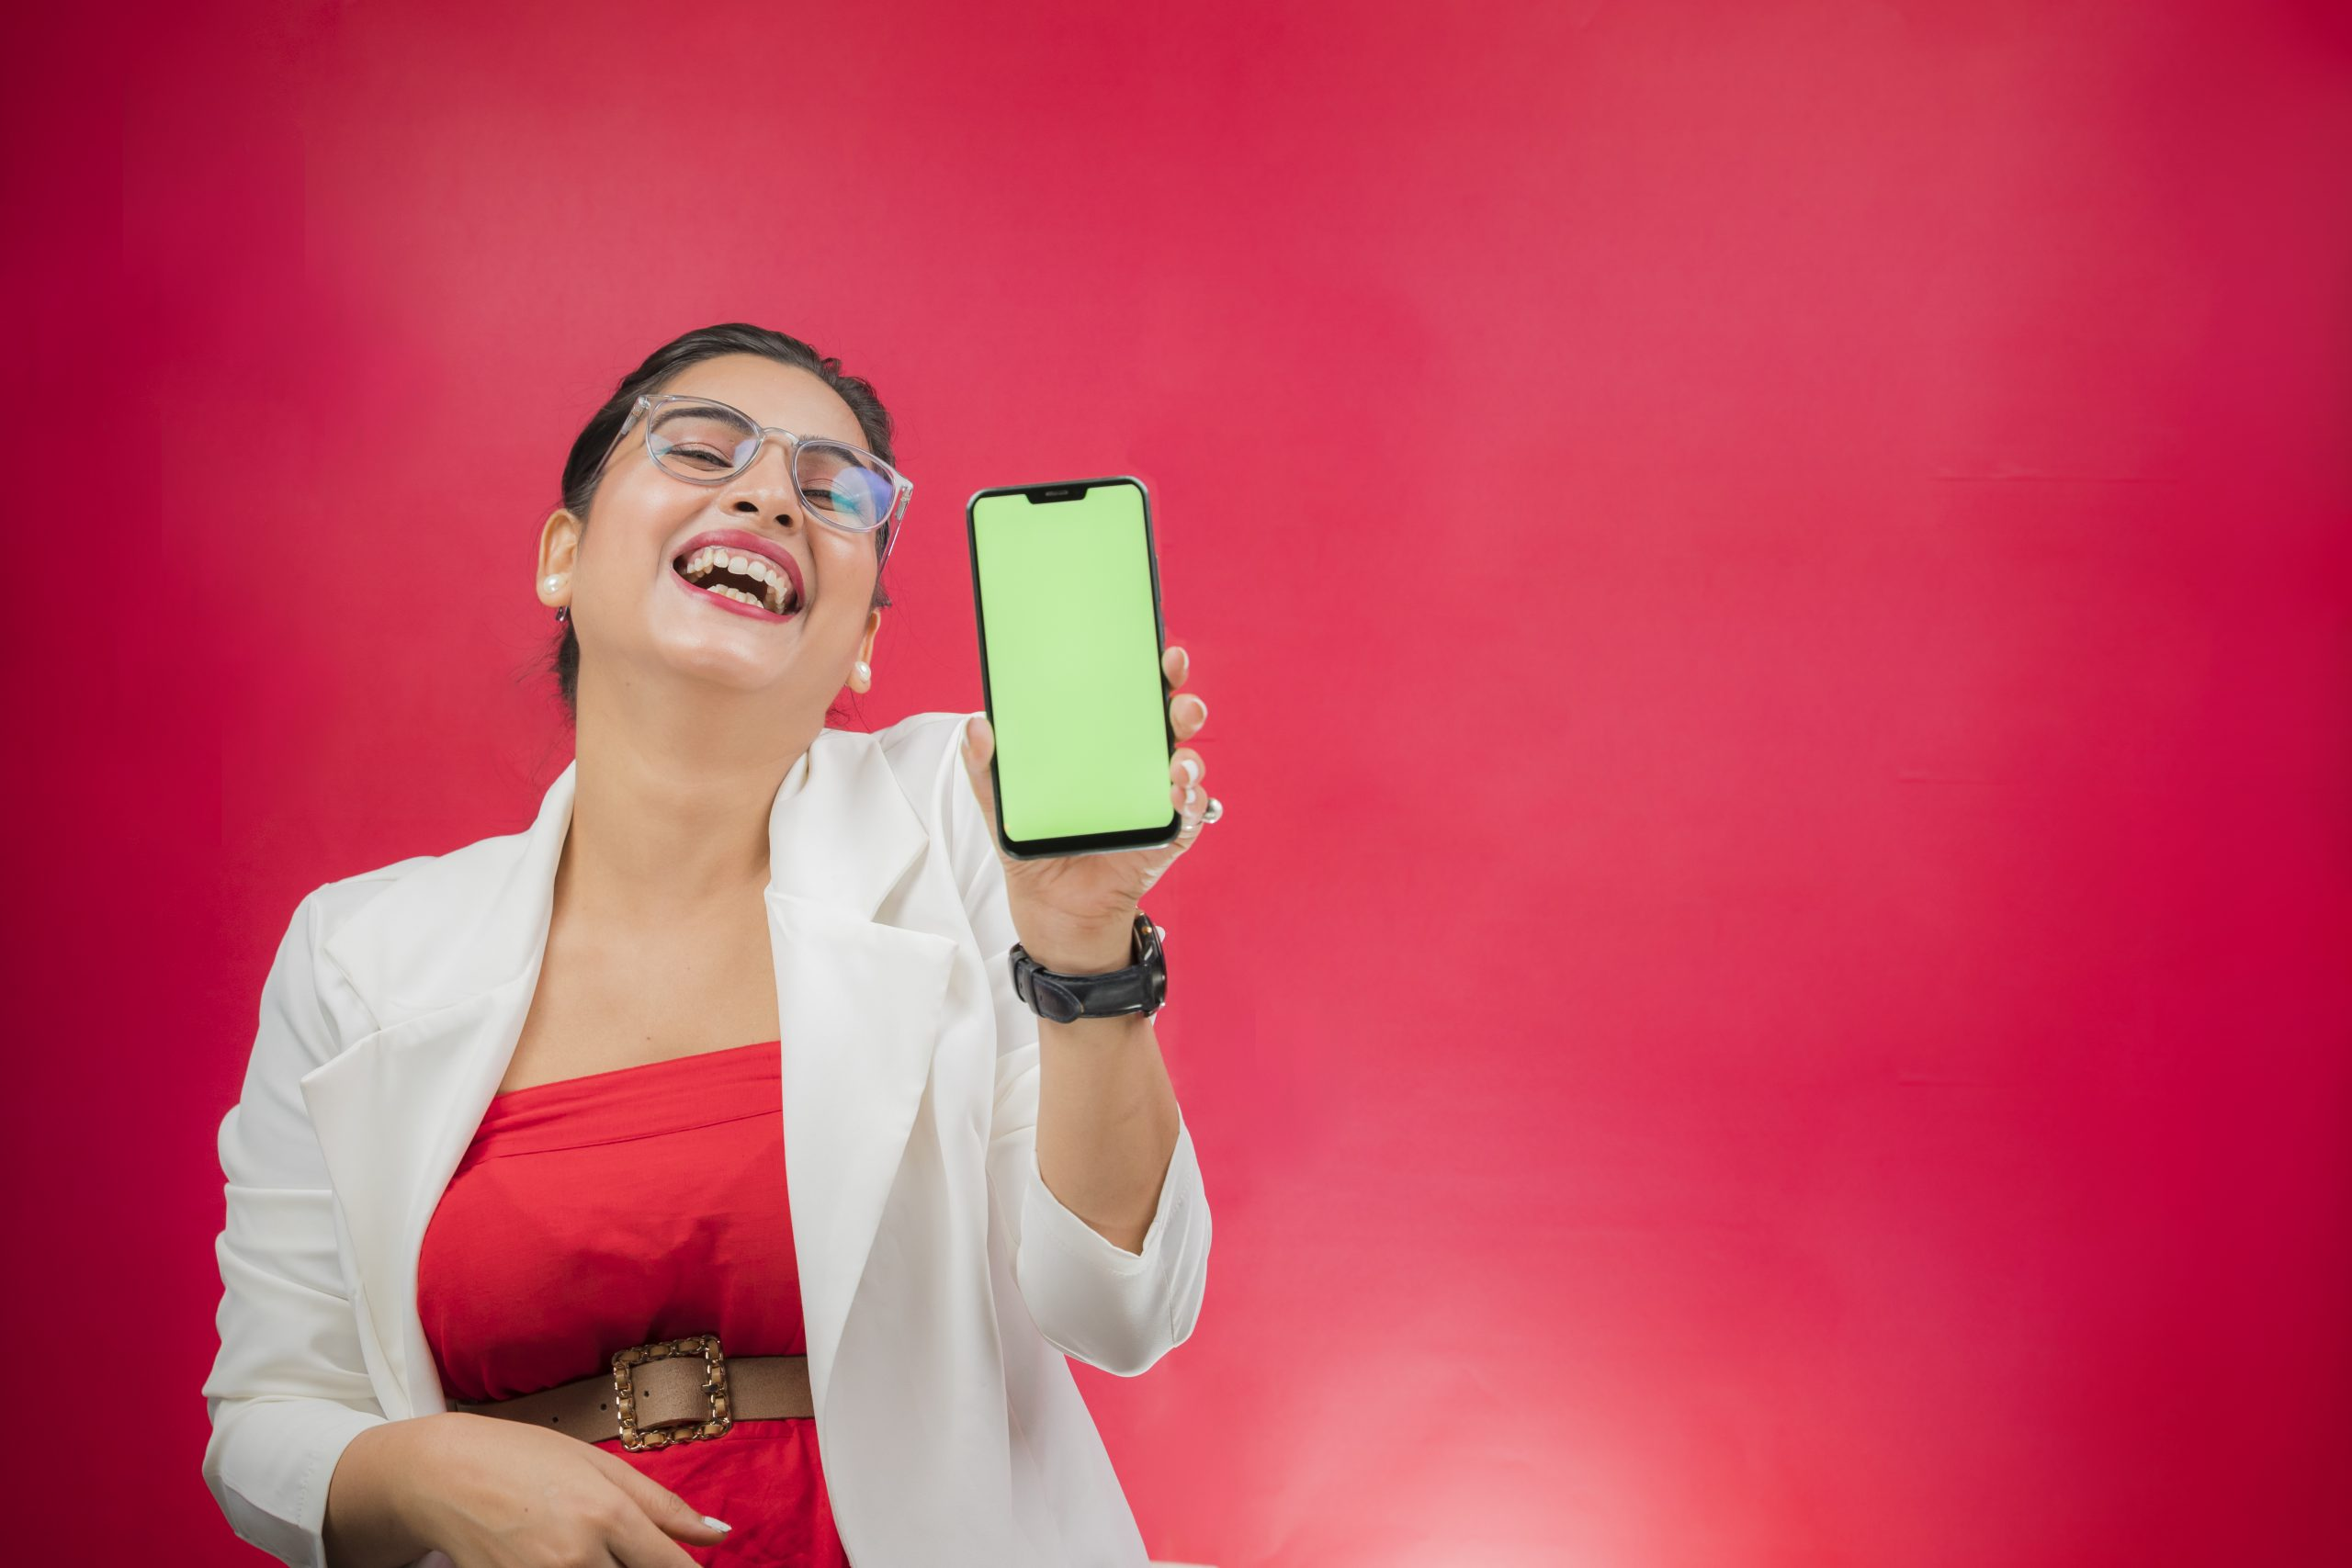 Businesswoman presenting mobile phone